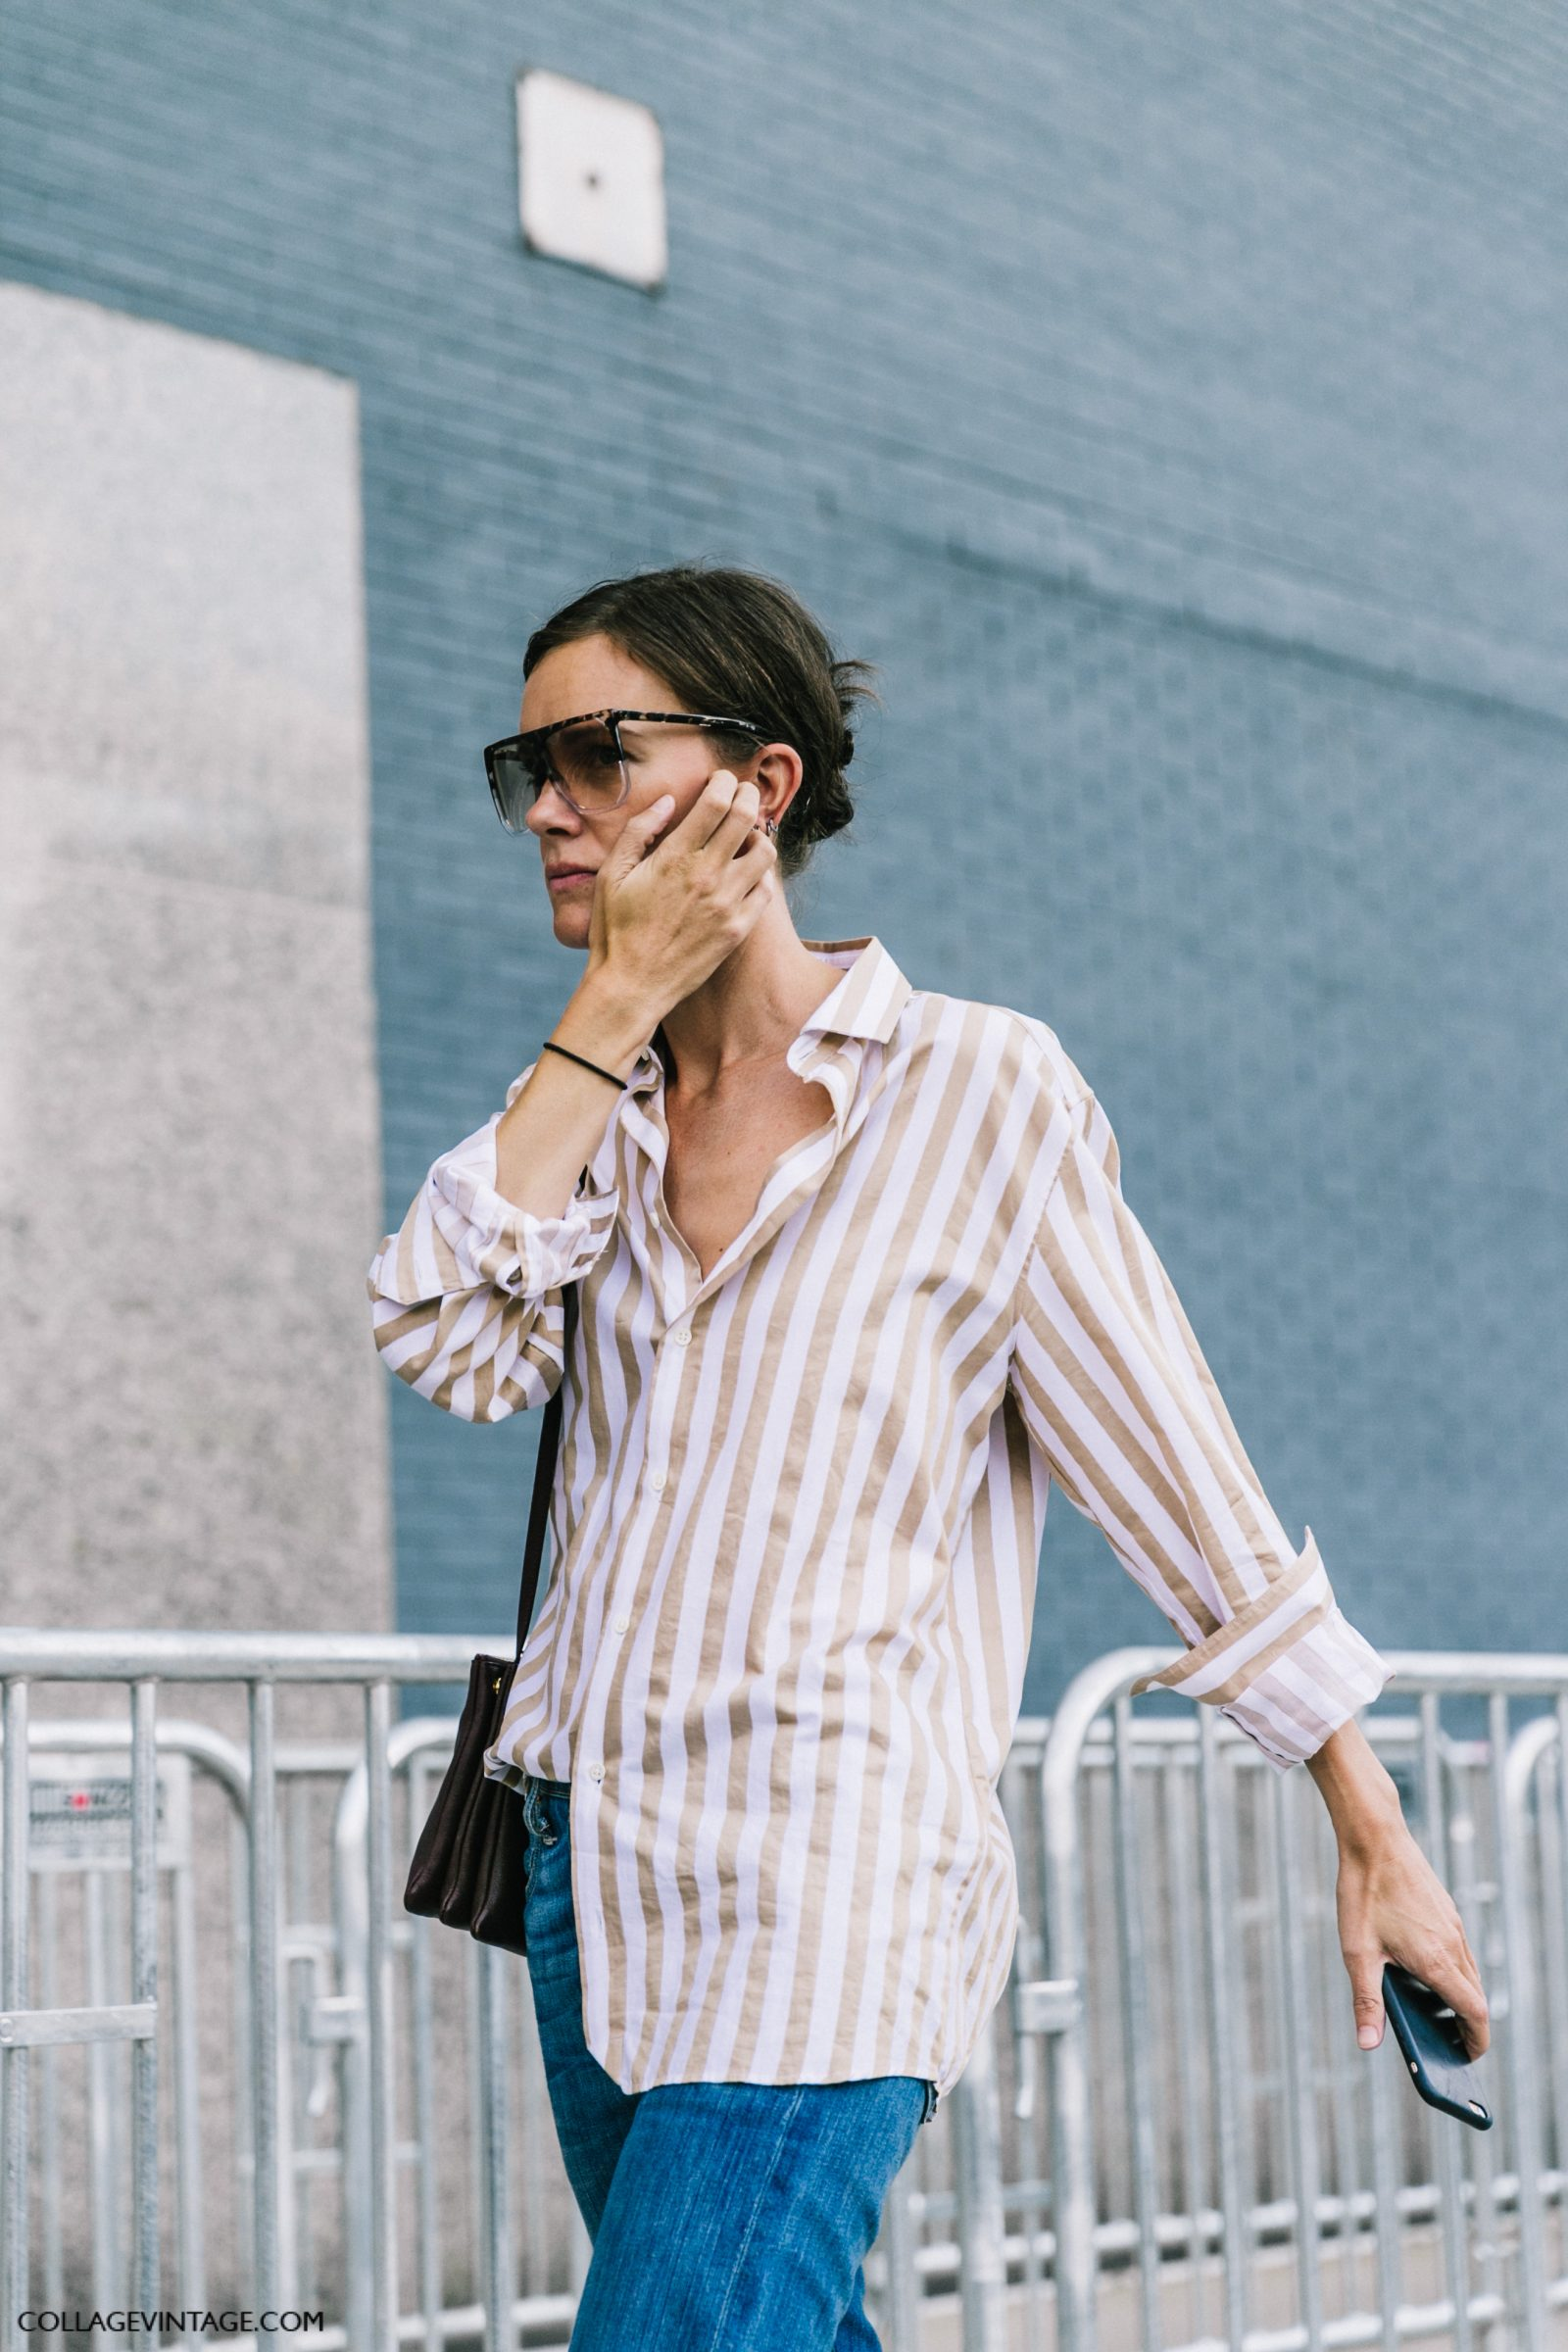 nyfw-new_york_fashion_week_ss17-street_style-outfits-collage_vintage-vintage-atuzarra-94